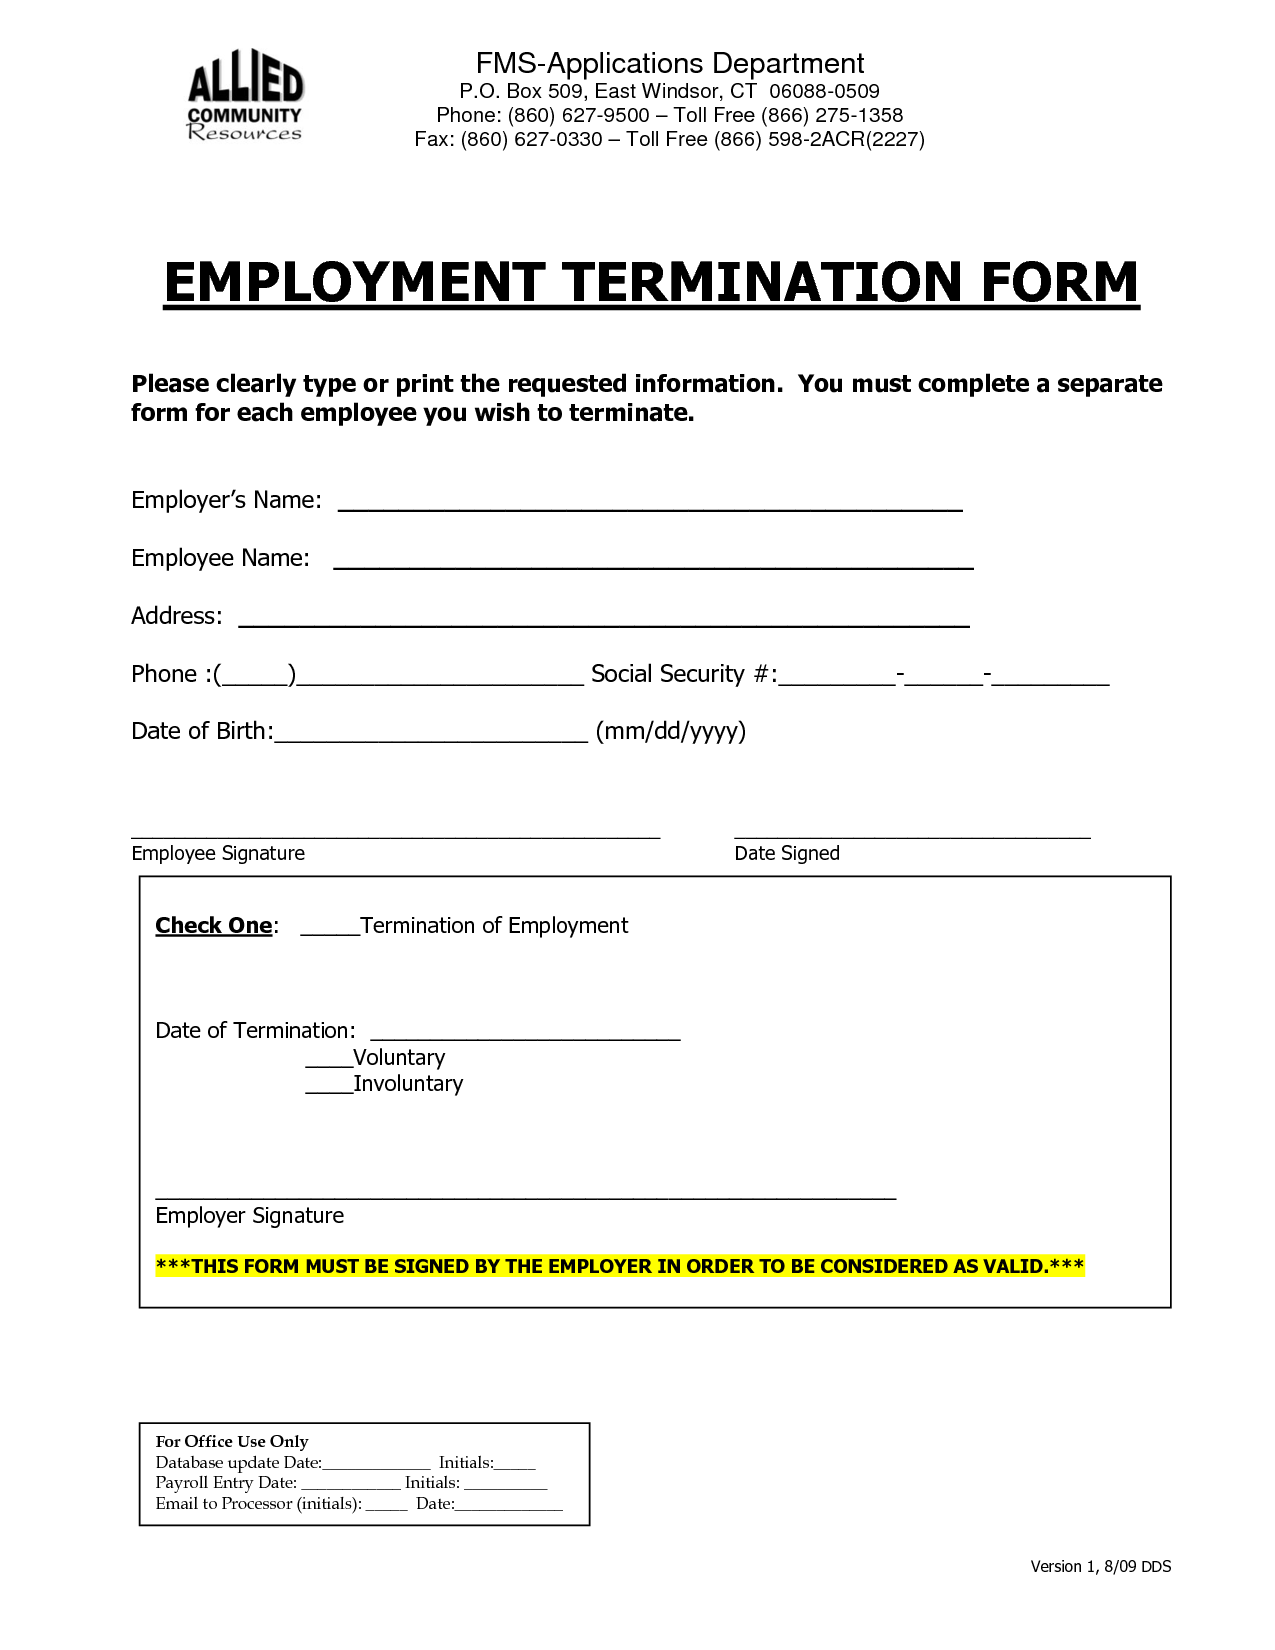 EMPLOYMENT TERMINATION FORM | Employee Forms | Pinterest ...